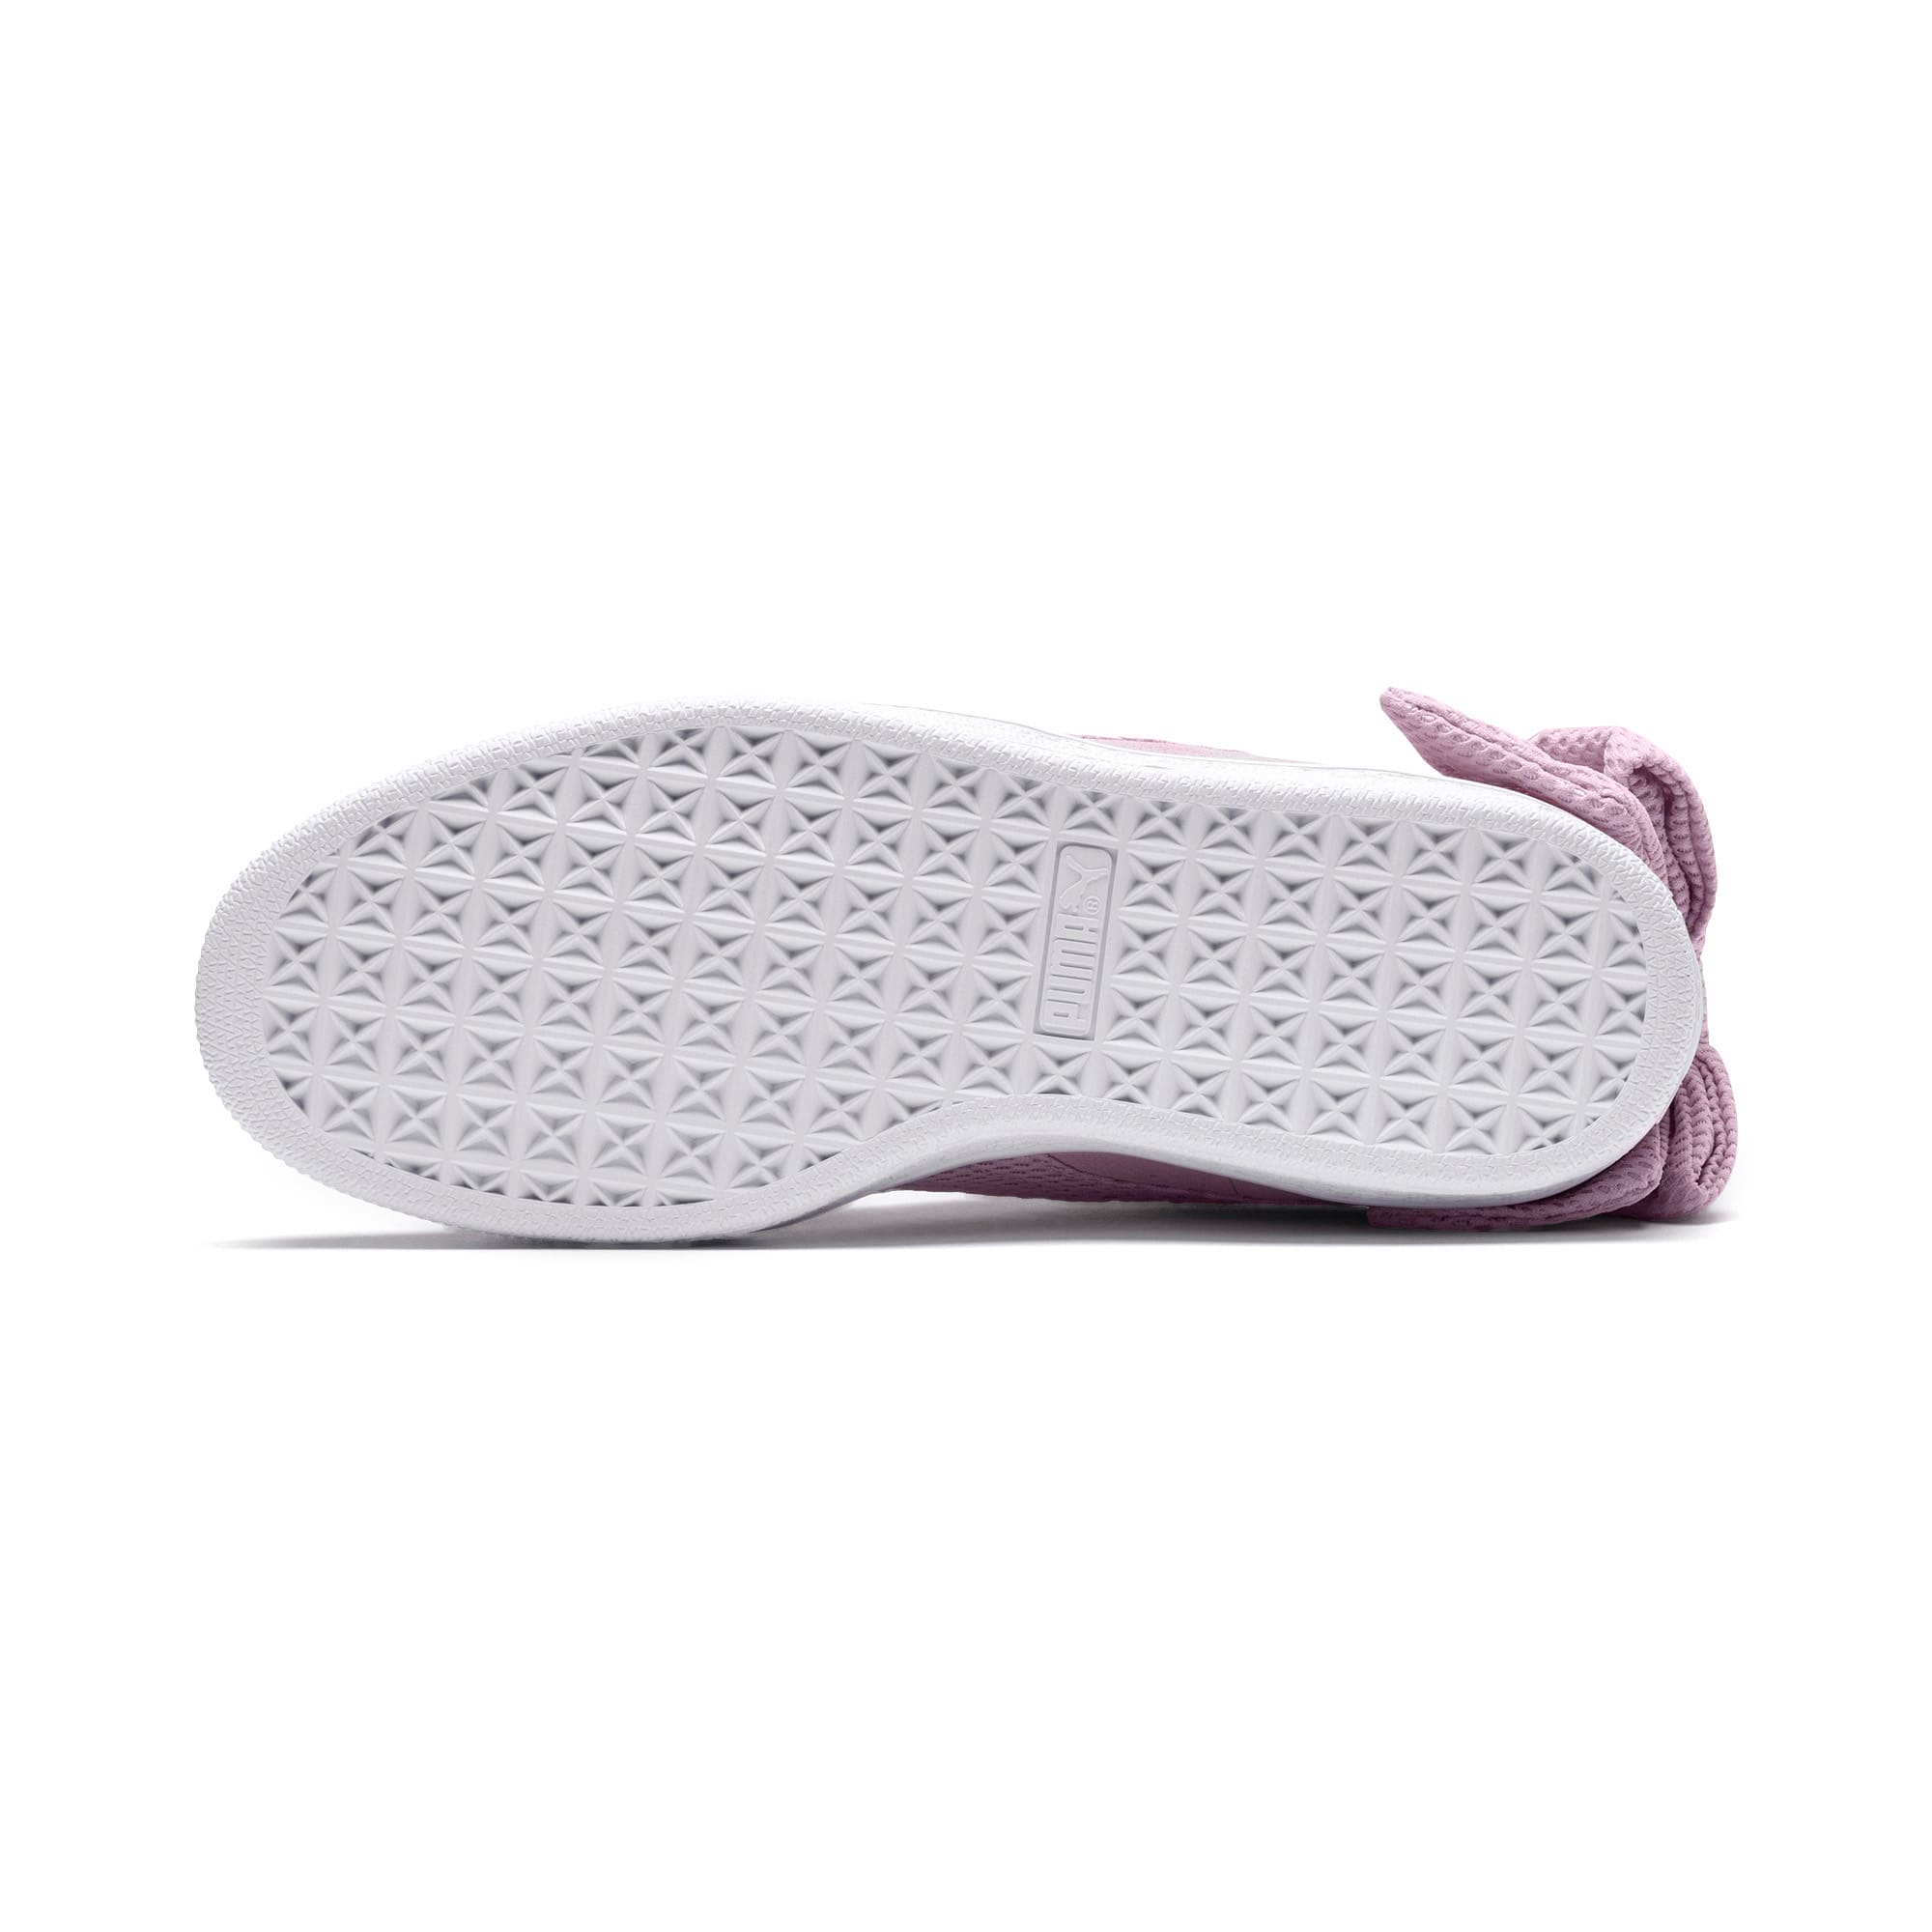 Thumbnail 3 of Suede Bow Uprising Women's Sneakers, Winsome Orchid-Puma White, medium